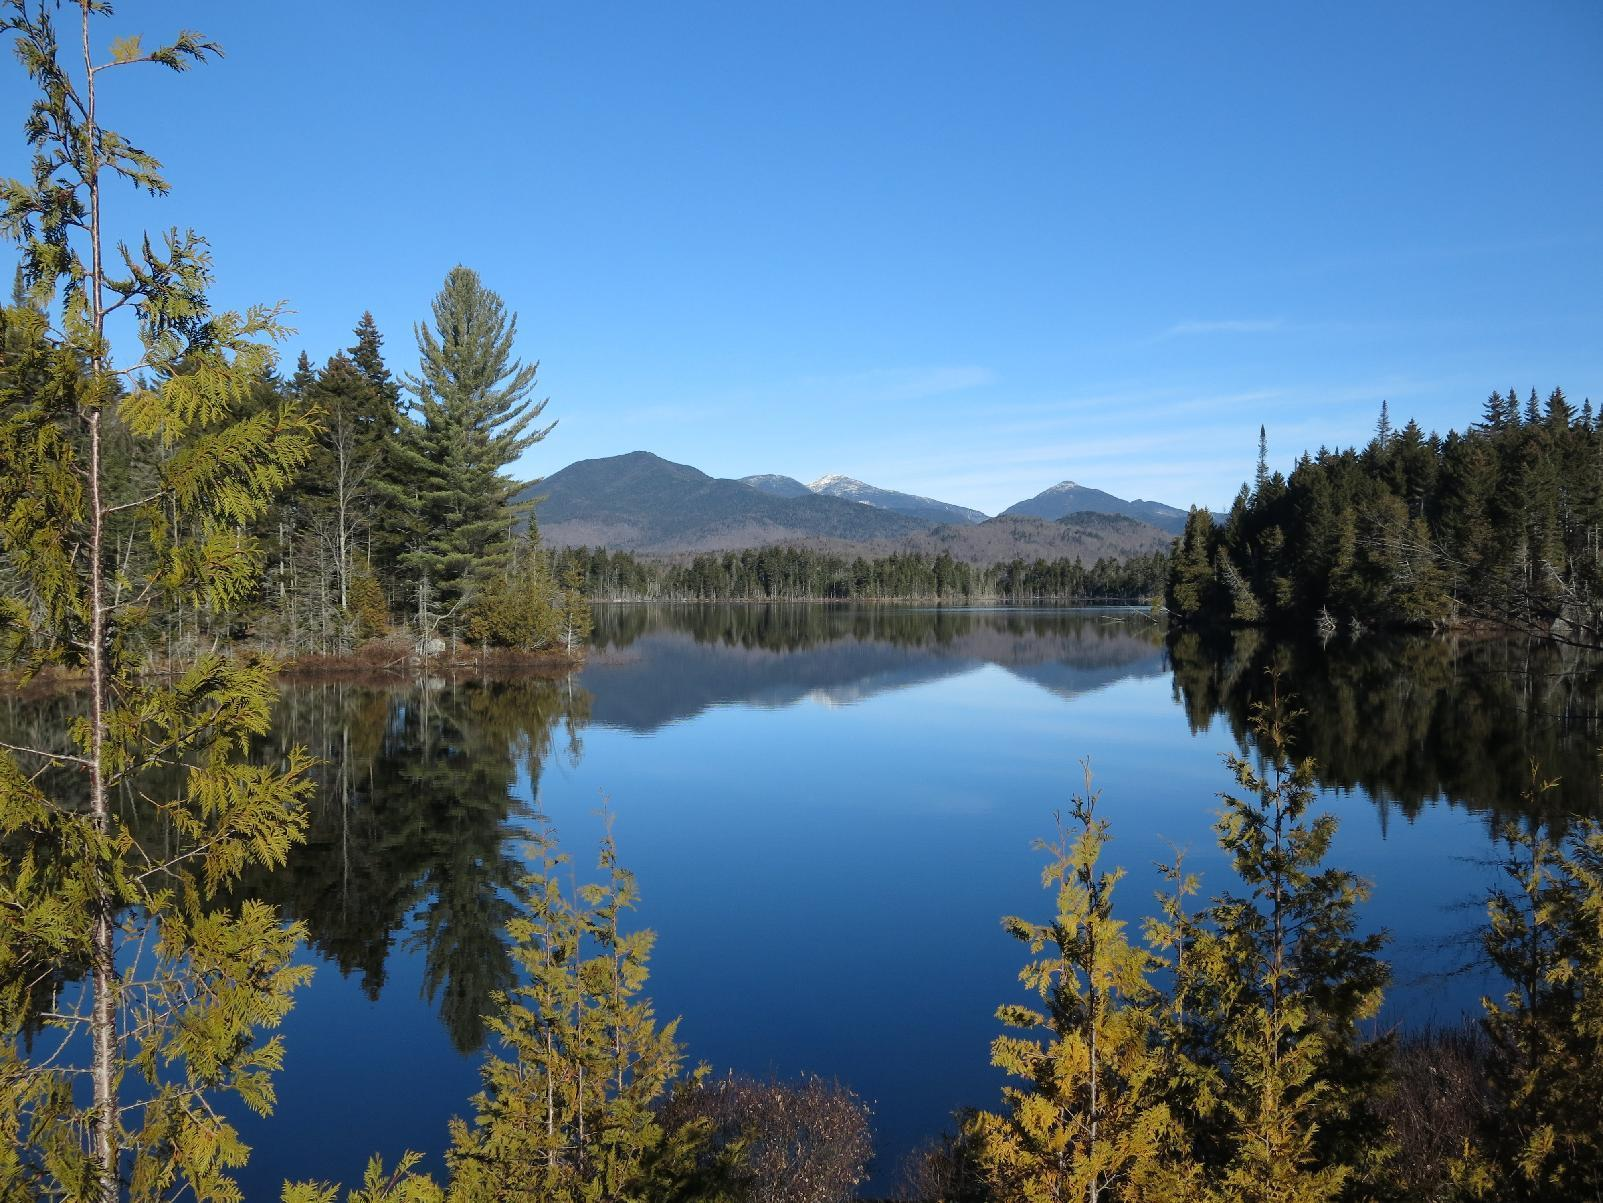 Hike vs ride: Debate heats up over next Adirondack land buy